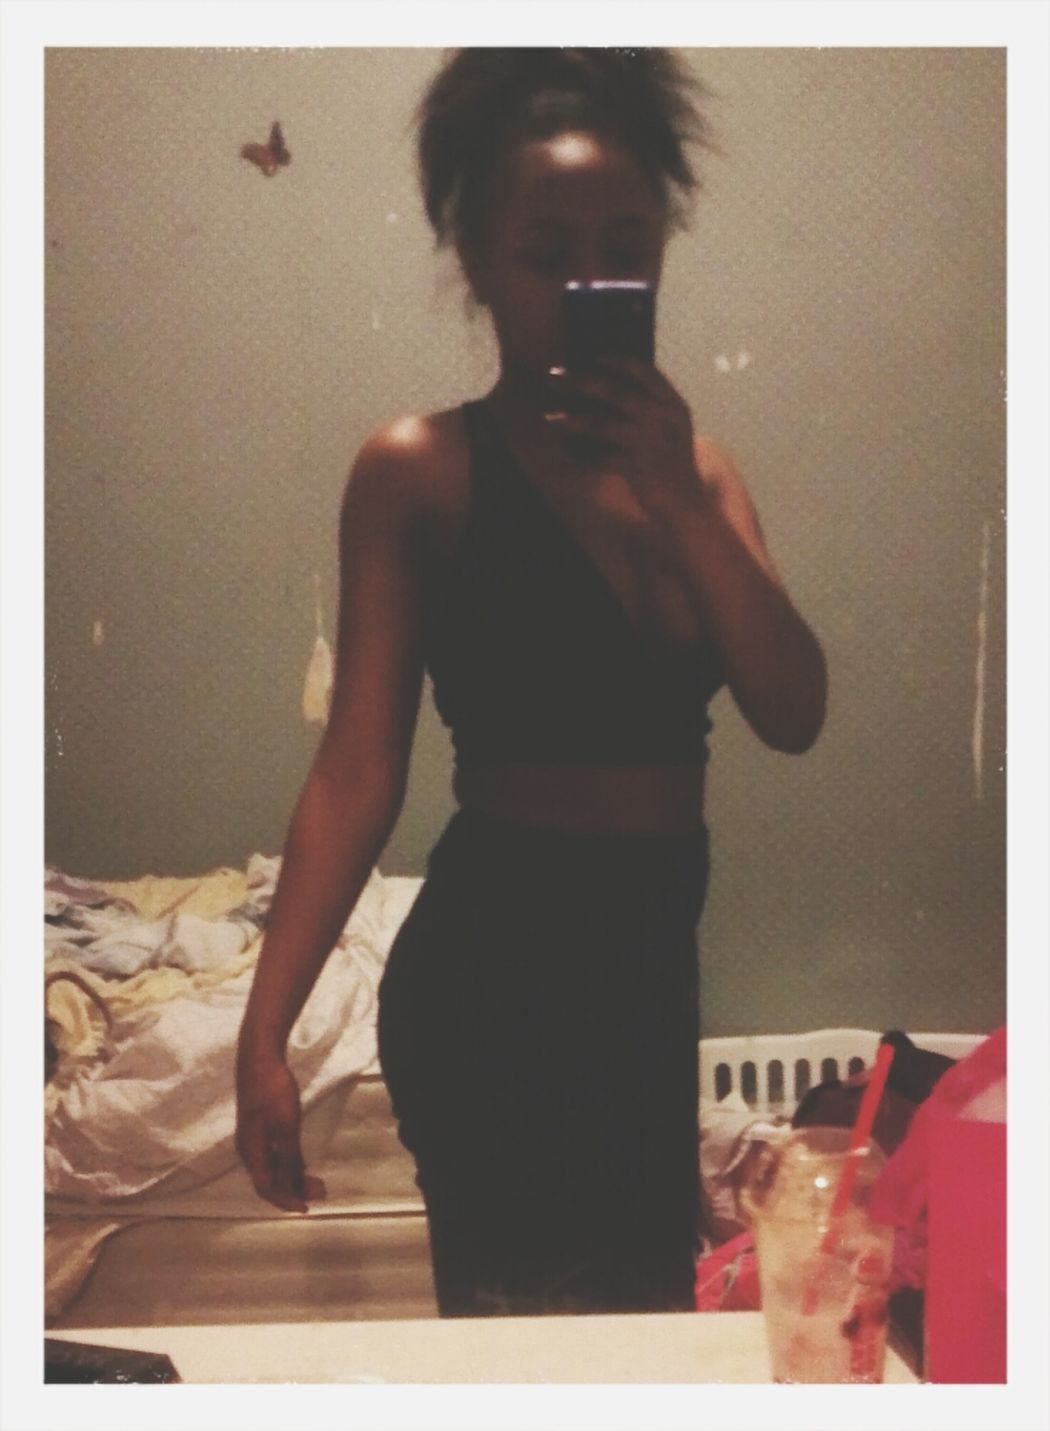 Trying on my new top New Clothes 😍😍😍😍😍😍😍😍😍😍😍😍😍 All BLVCK Im Cute